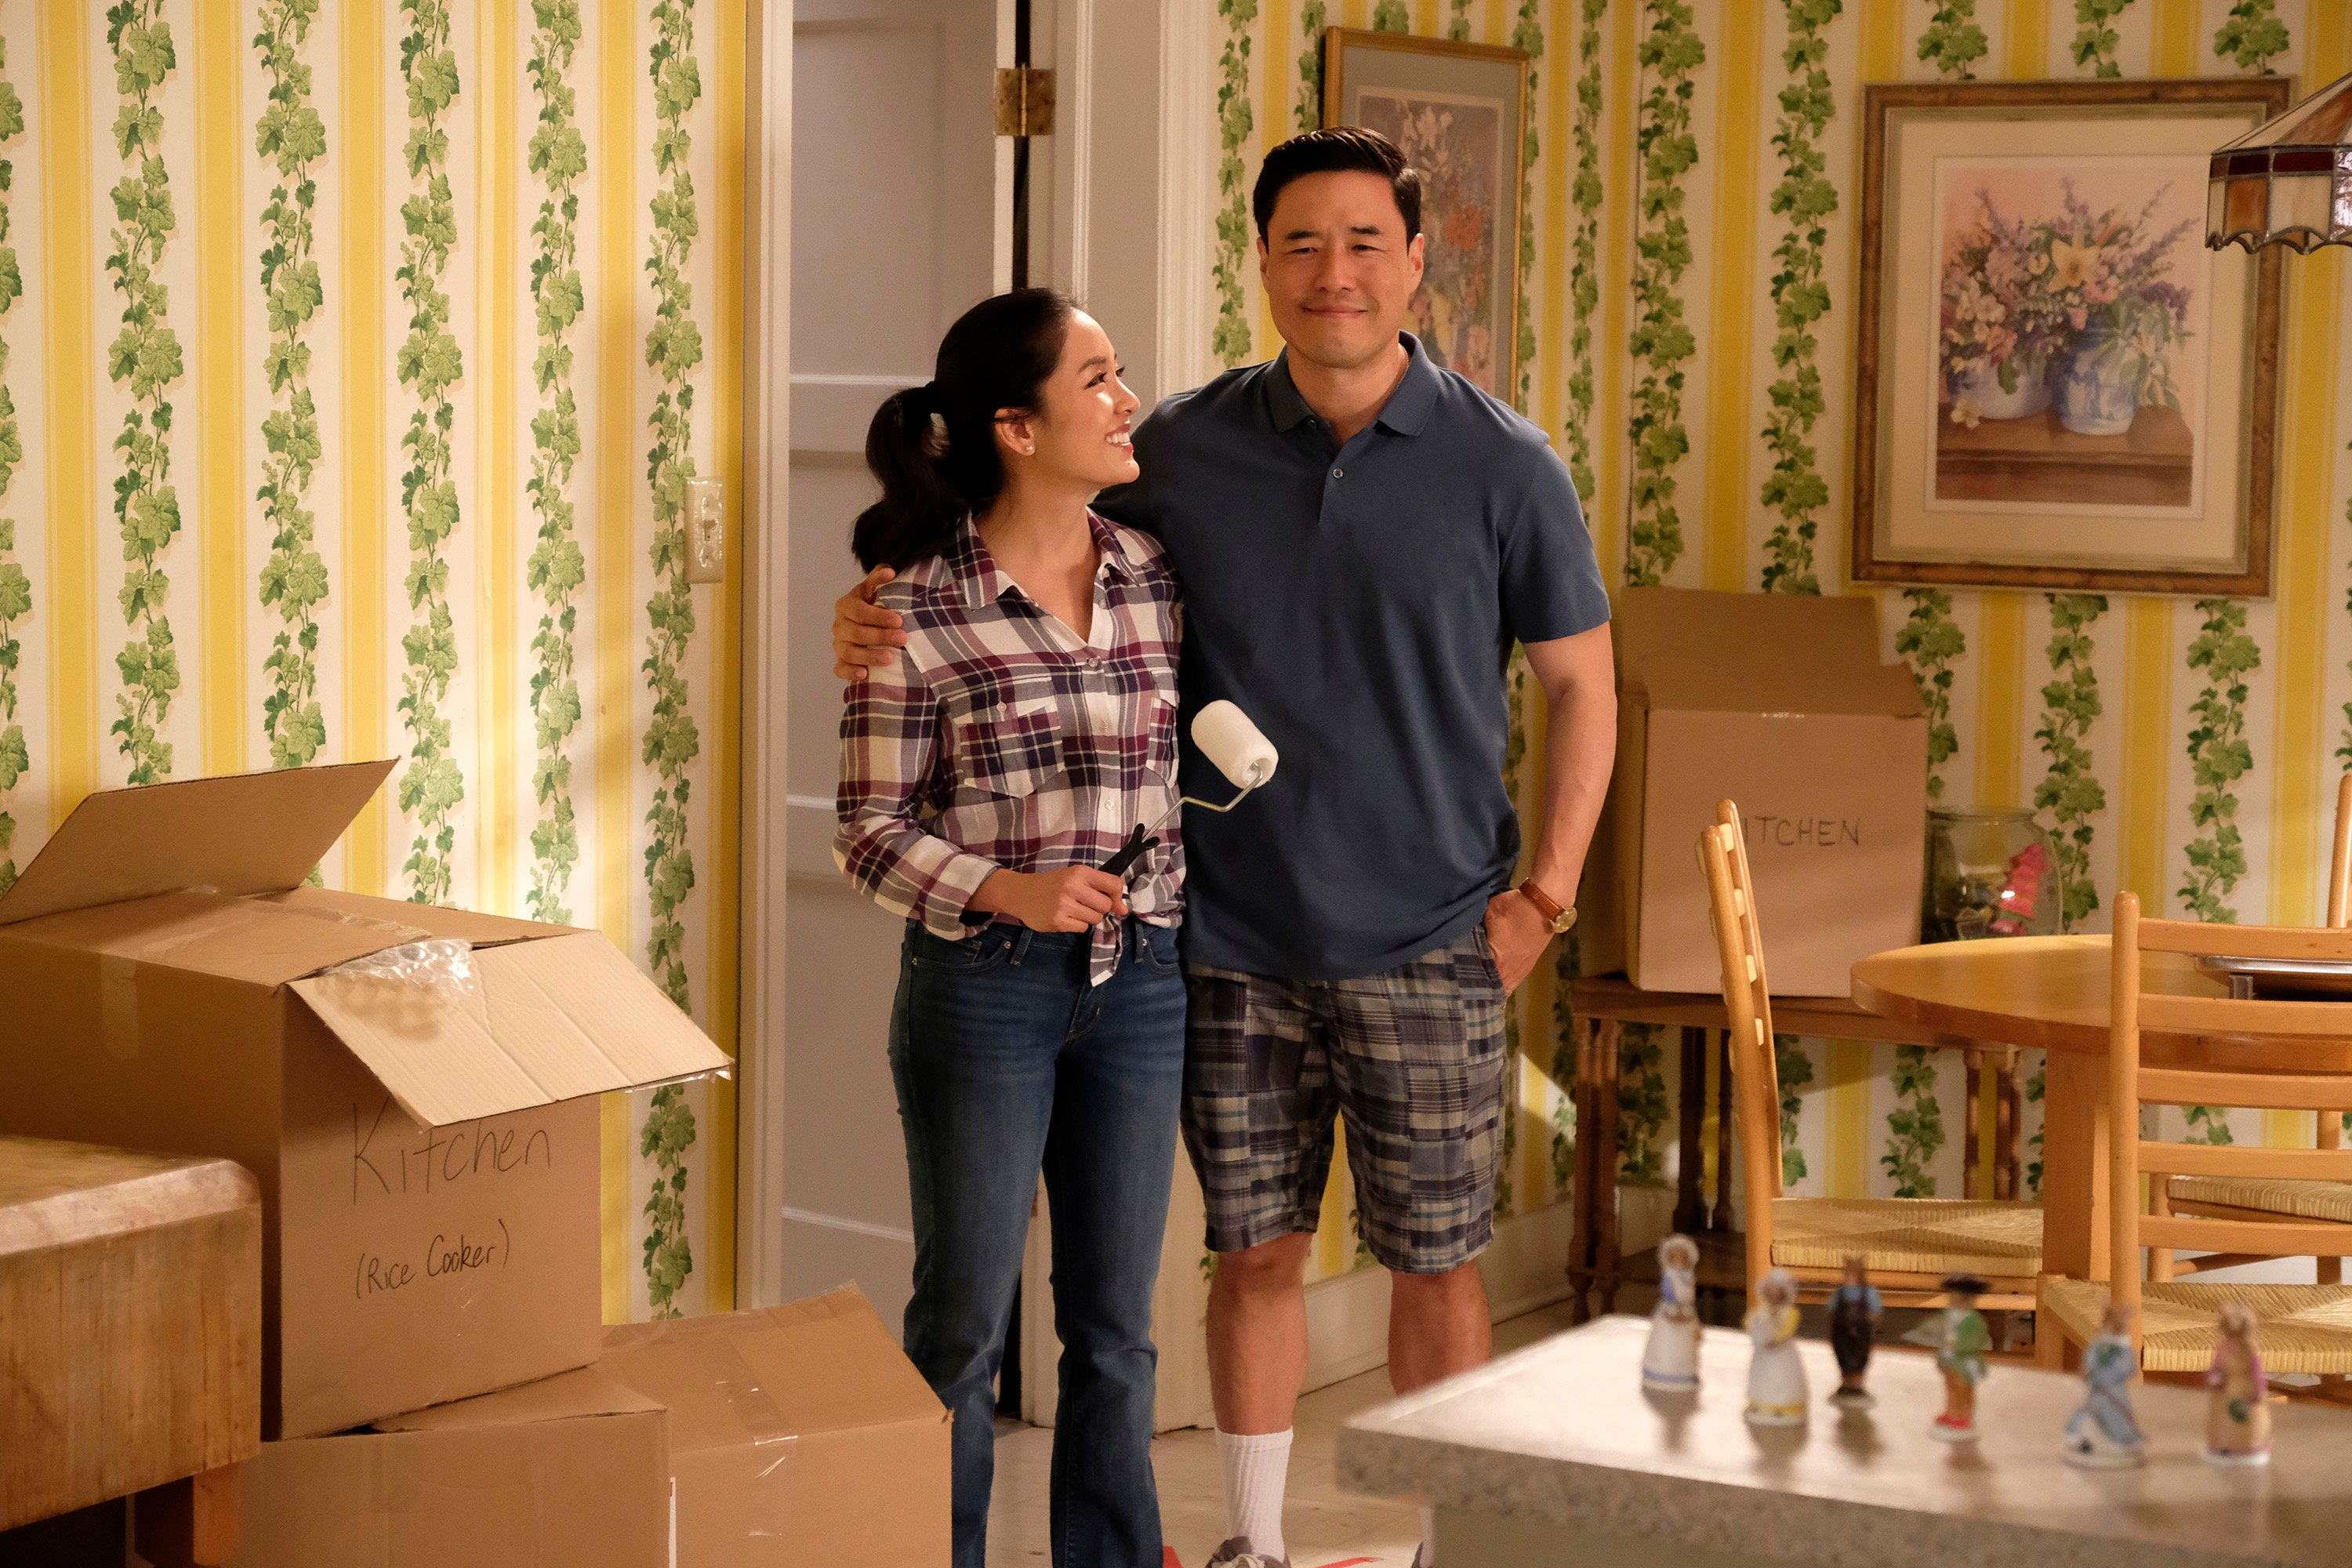 FRESH OFF THE BOAT - 'This Isn't Us' - Louis and Jessica make big changes to provide a better life for their family.  Yet these changes come with their own set of challenges and possibly a few regrets, on the season finale of ABC's 'Fresh Off the Boat,' airing on TUESDAY, MAY 16 (9:00-9:30 p.m. EDT). (Nicole Wilder/ABC via Getty Images) CONSTANCE WU, RANDALL PARK